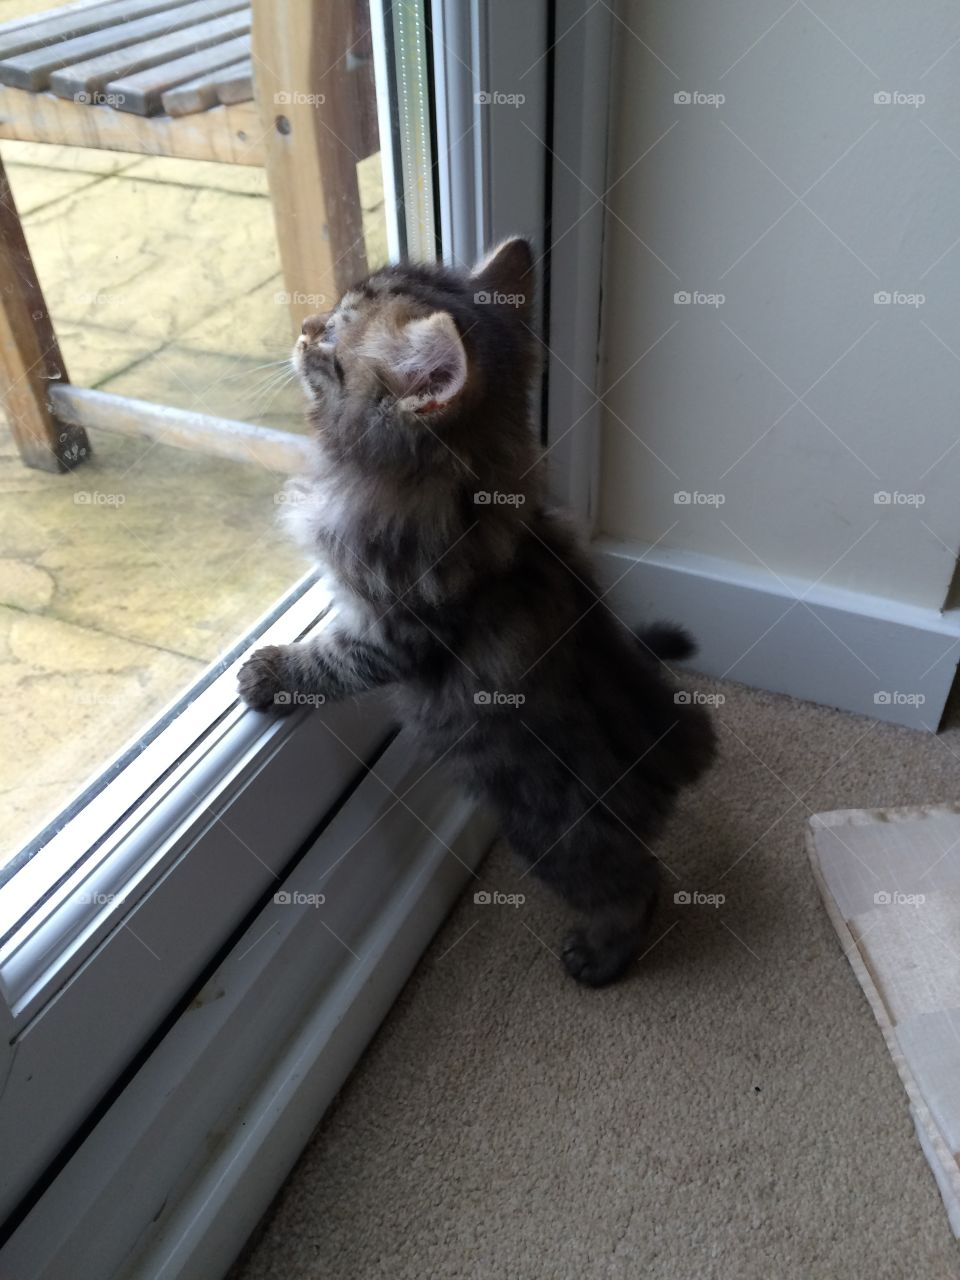 Maine coon tabby lynx kitten longing to see the outside world.